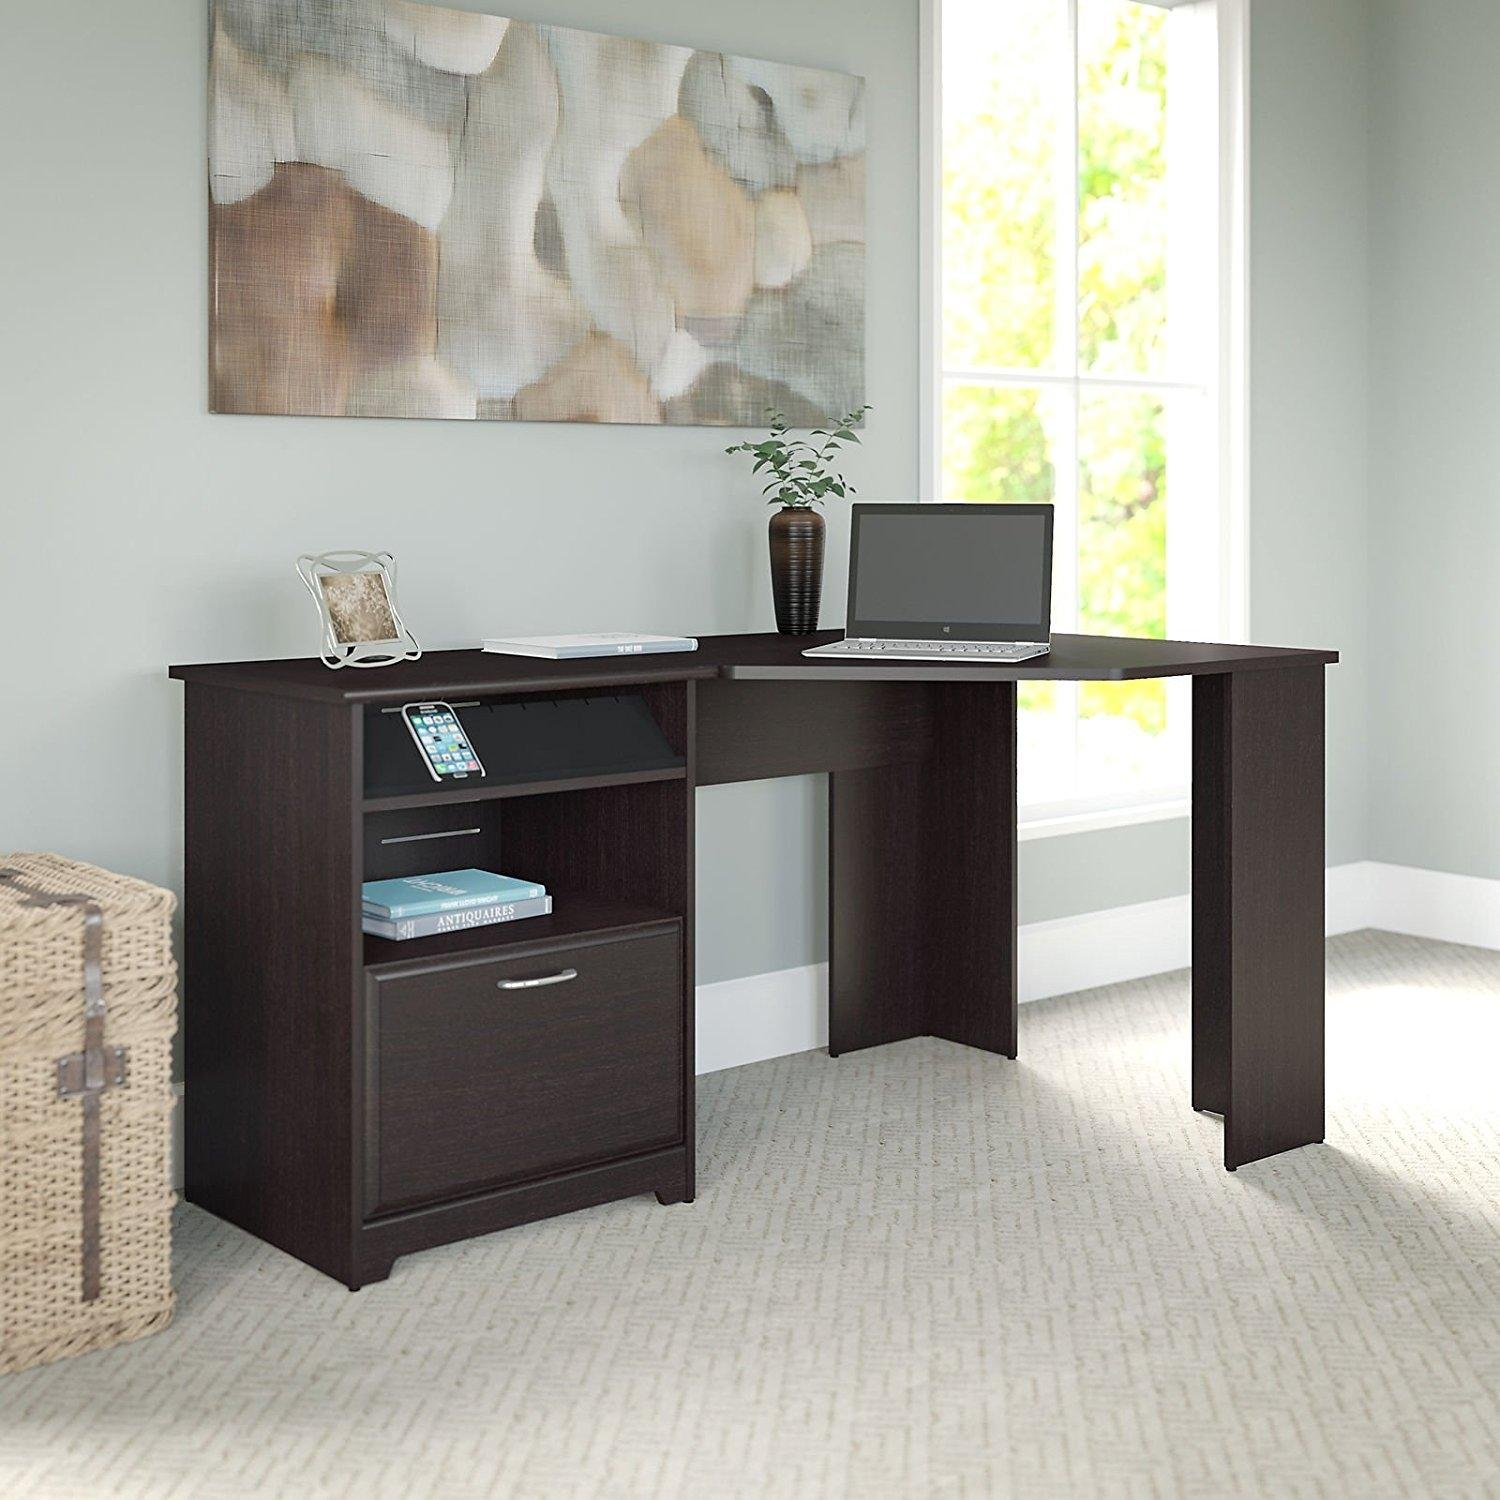 Dark Brown Modern Corner Computer Desk | Perfect Space Saving Contemporary Home Office or College Student Dorm Room Storage Table for Your PC, Laptop, Monitor, Books, Papers and Supplies